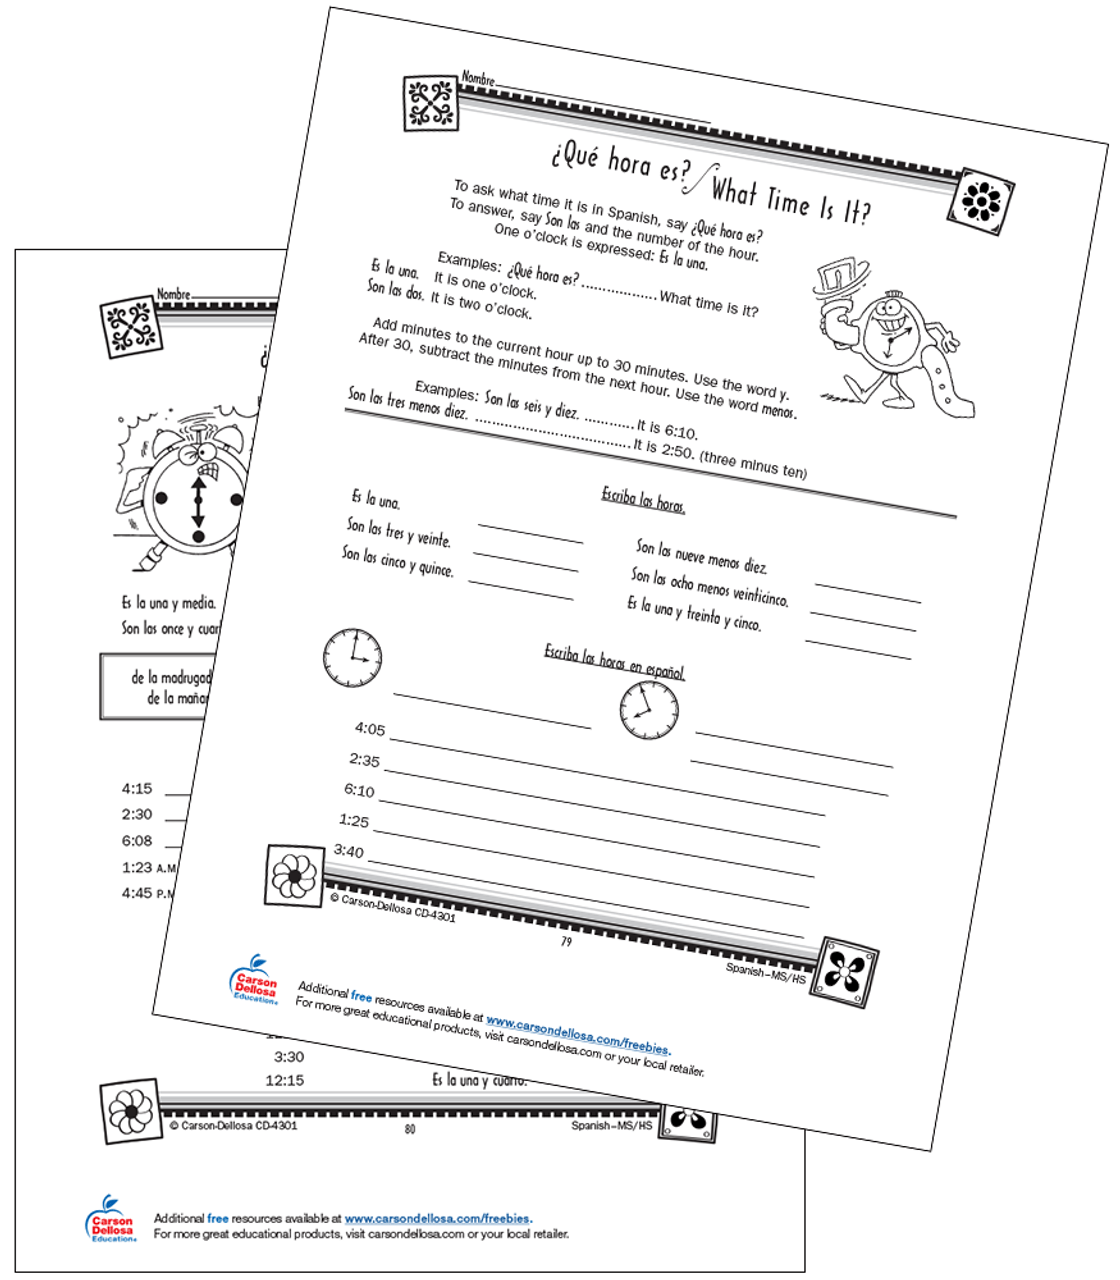 medium resolution of Time Vocabulary and Expressions Grade 6-12 Spanish Free Printable   Carson  Dellosa